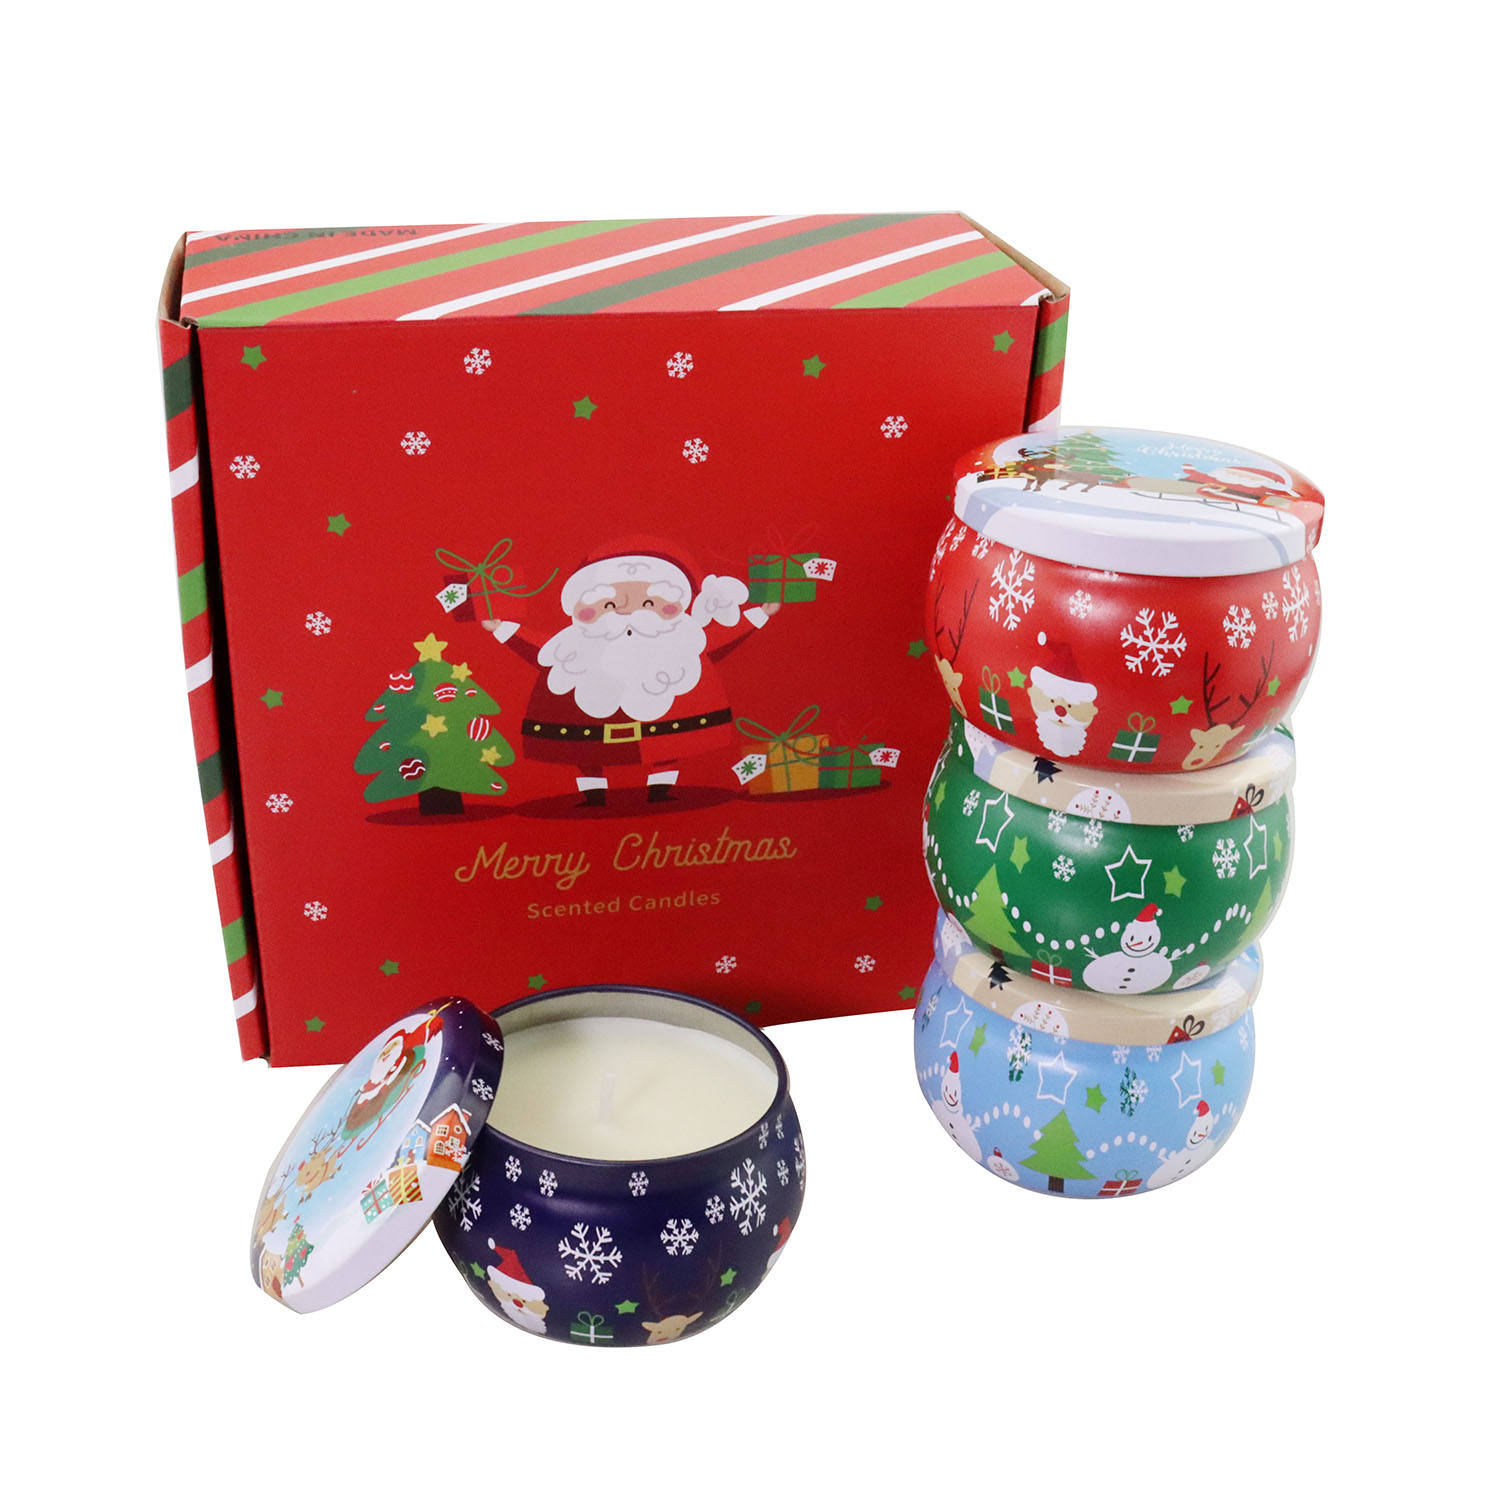 free shipping in stock 4.4 oz scented soy wax 5% fragrance 4 packs New Year Gift Set Christmas Candle